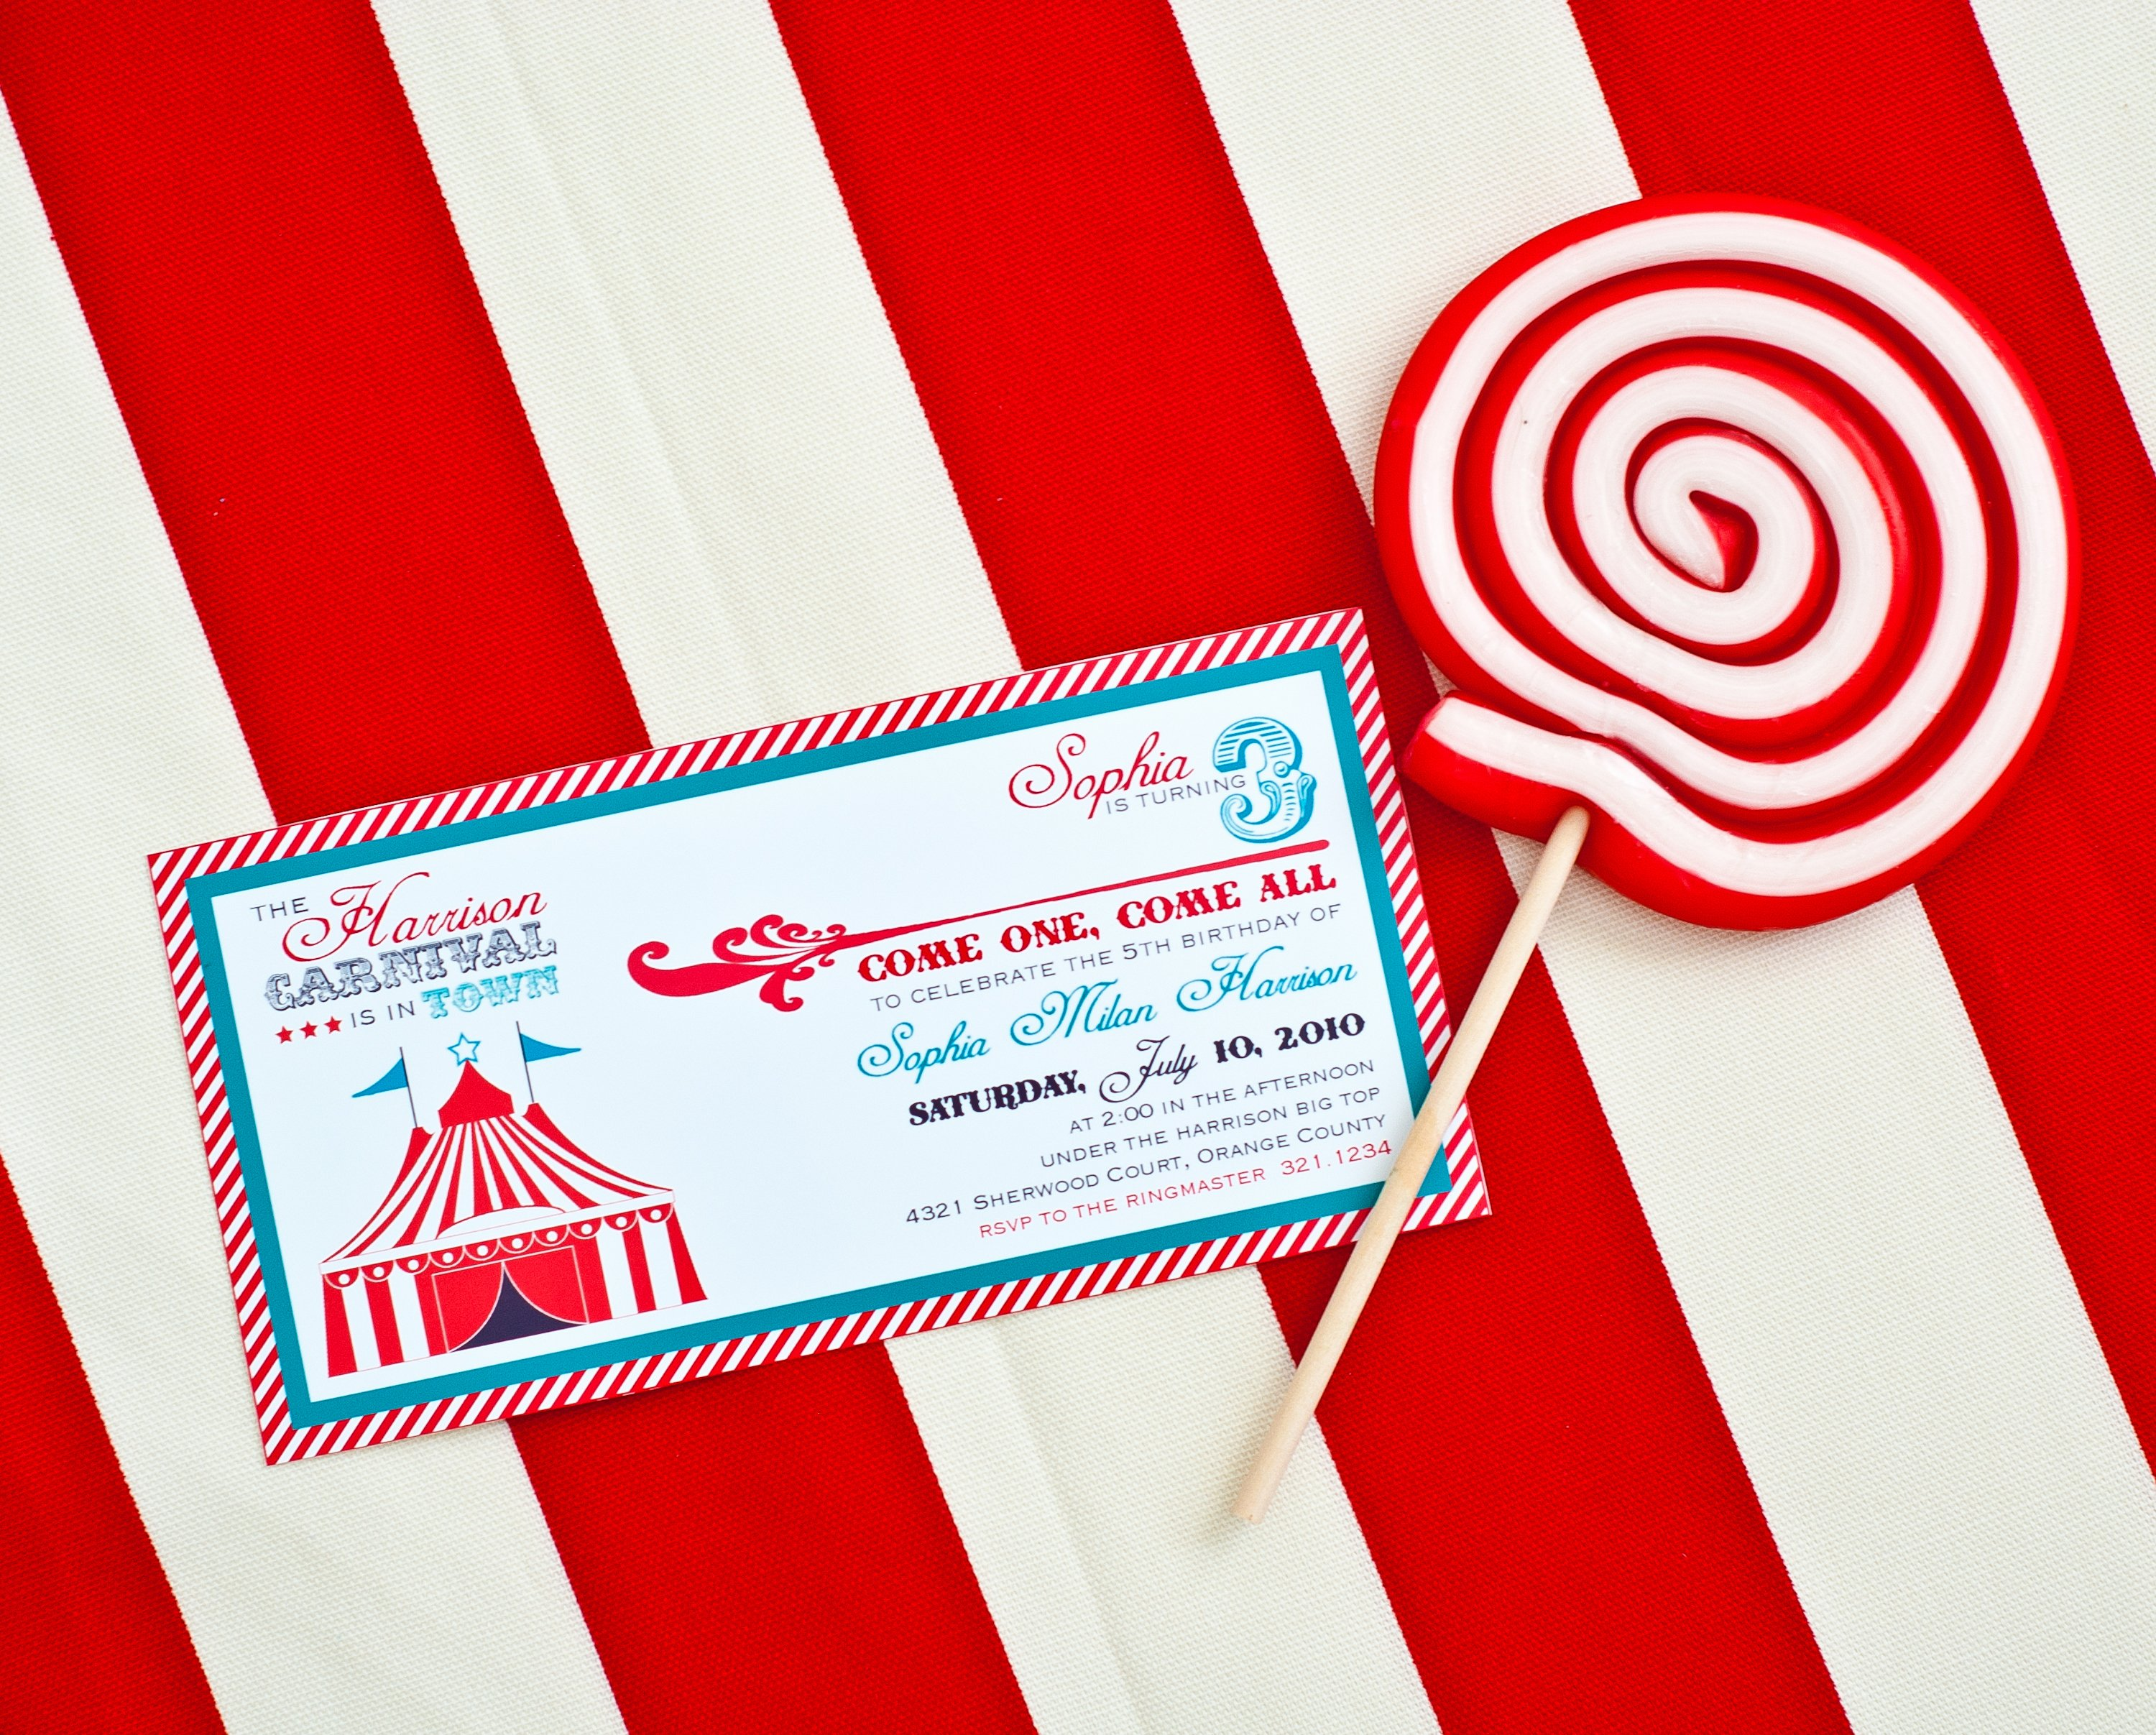 Carnival theme Party Invitations Unique Carnival Party Printables Round Up anders Ruff Custom